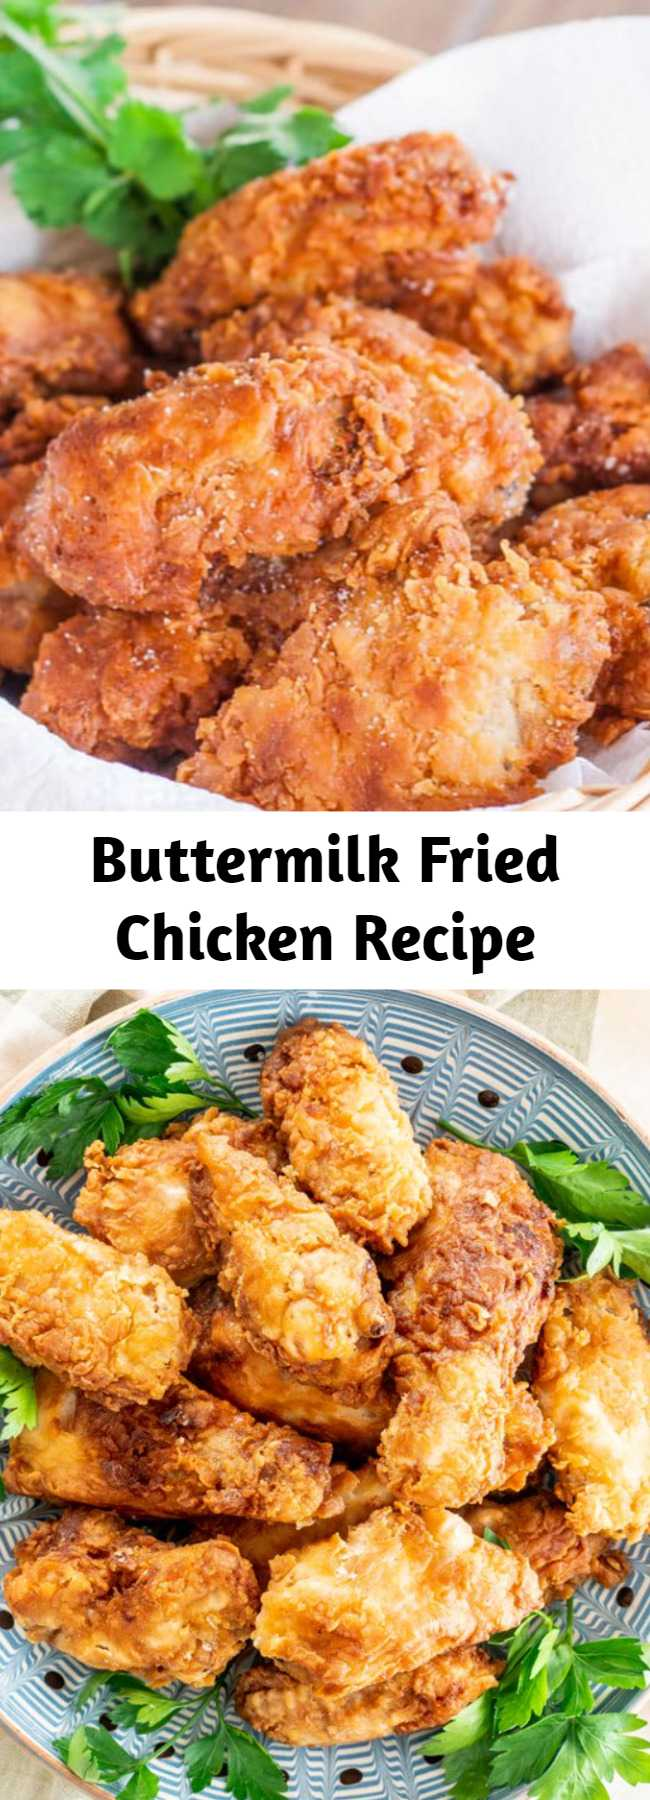 Buttermilk Fried Chicken Recipe - This is the BEST EVER Buttermilk Fried Chicken! Super juicy and tender on the inside yet crispy on the outside and bursting with flavor! Perfect for lunch or dinner and served with a side salad.